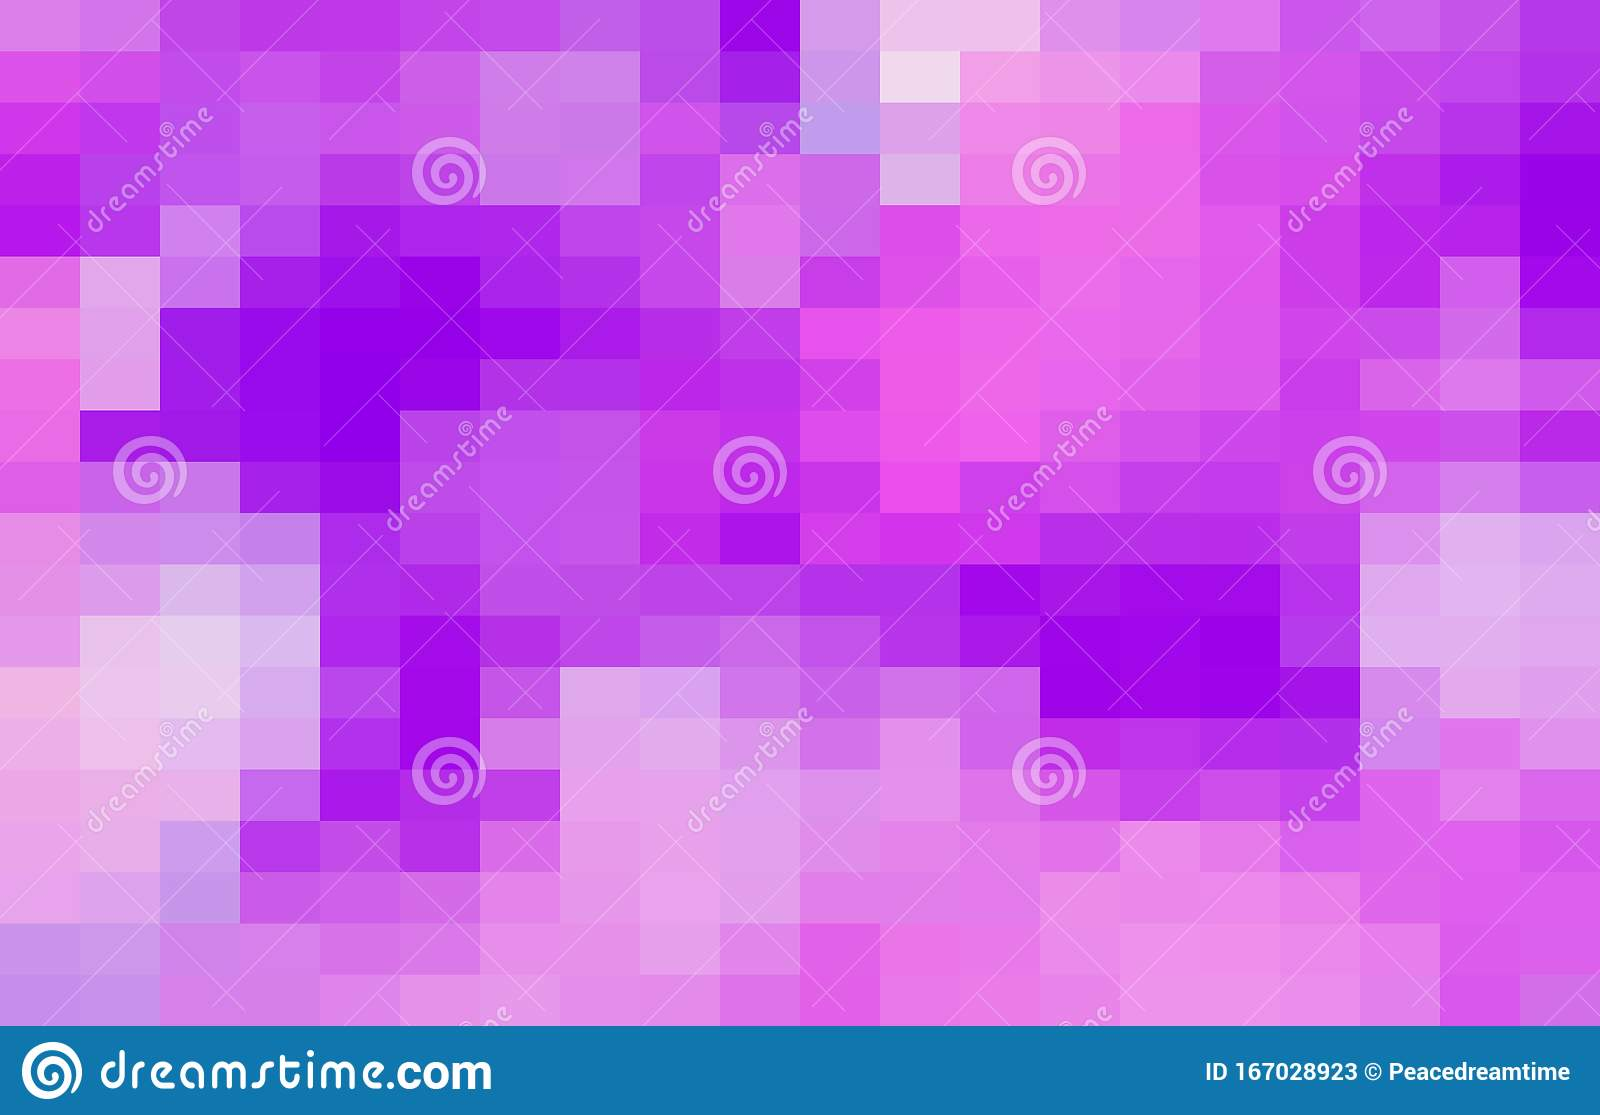 Abstract Purple Geometric Background Creative Design Templates Pixel Art Grid Mosaic 8 Bit Vector Background Stock Vector Illustration Of Colorful Pixel 167028923